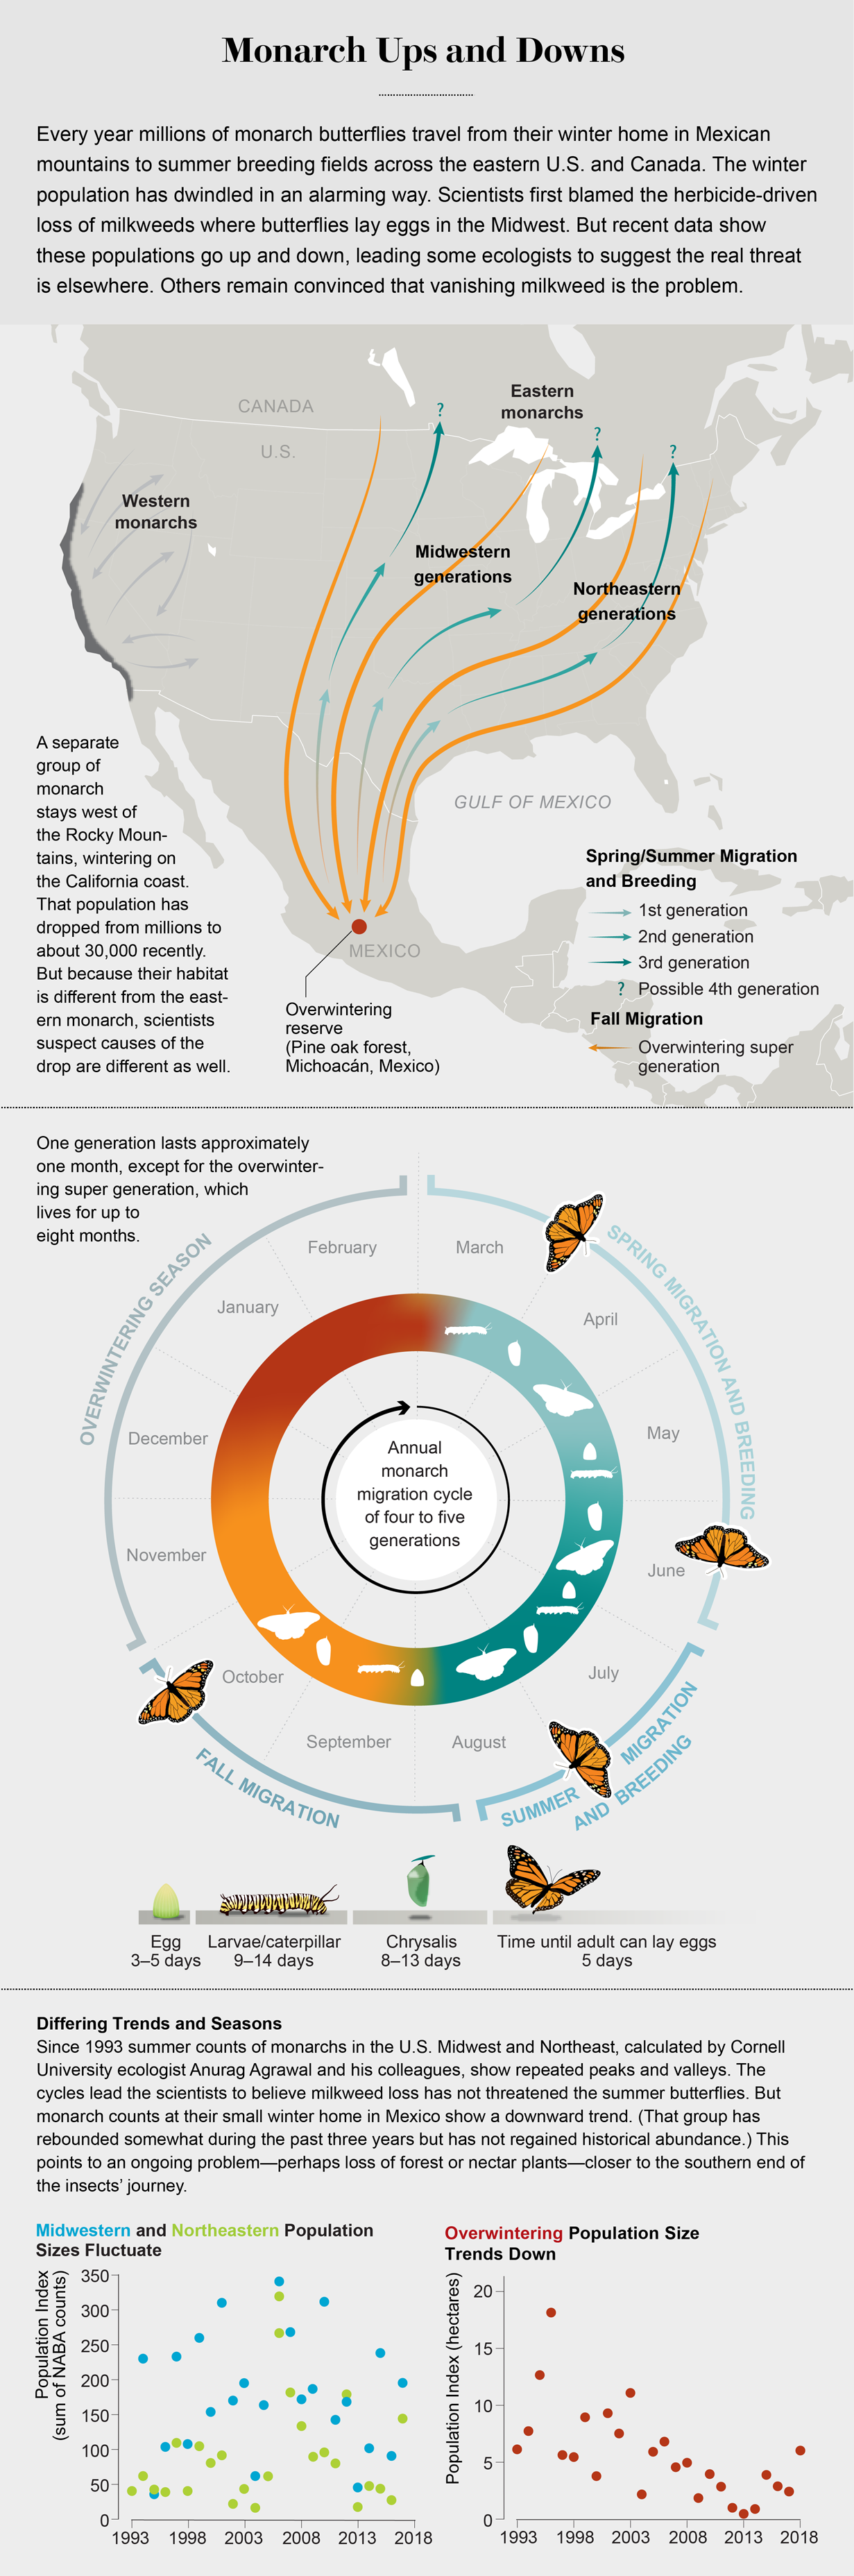 Charts show that winter monarch butterfly population size in Mexico has trended down (1993–2019); spring and summer populations have fluctuated. A migration map and life-cycle diagram provide more context